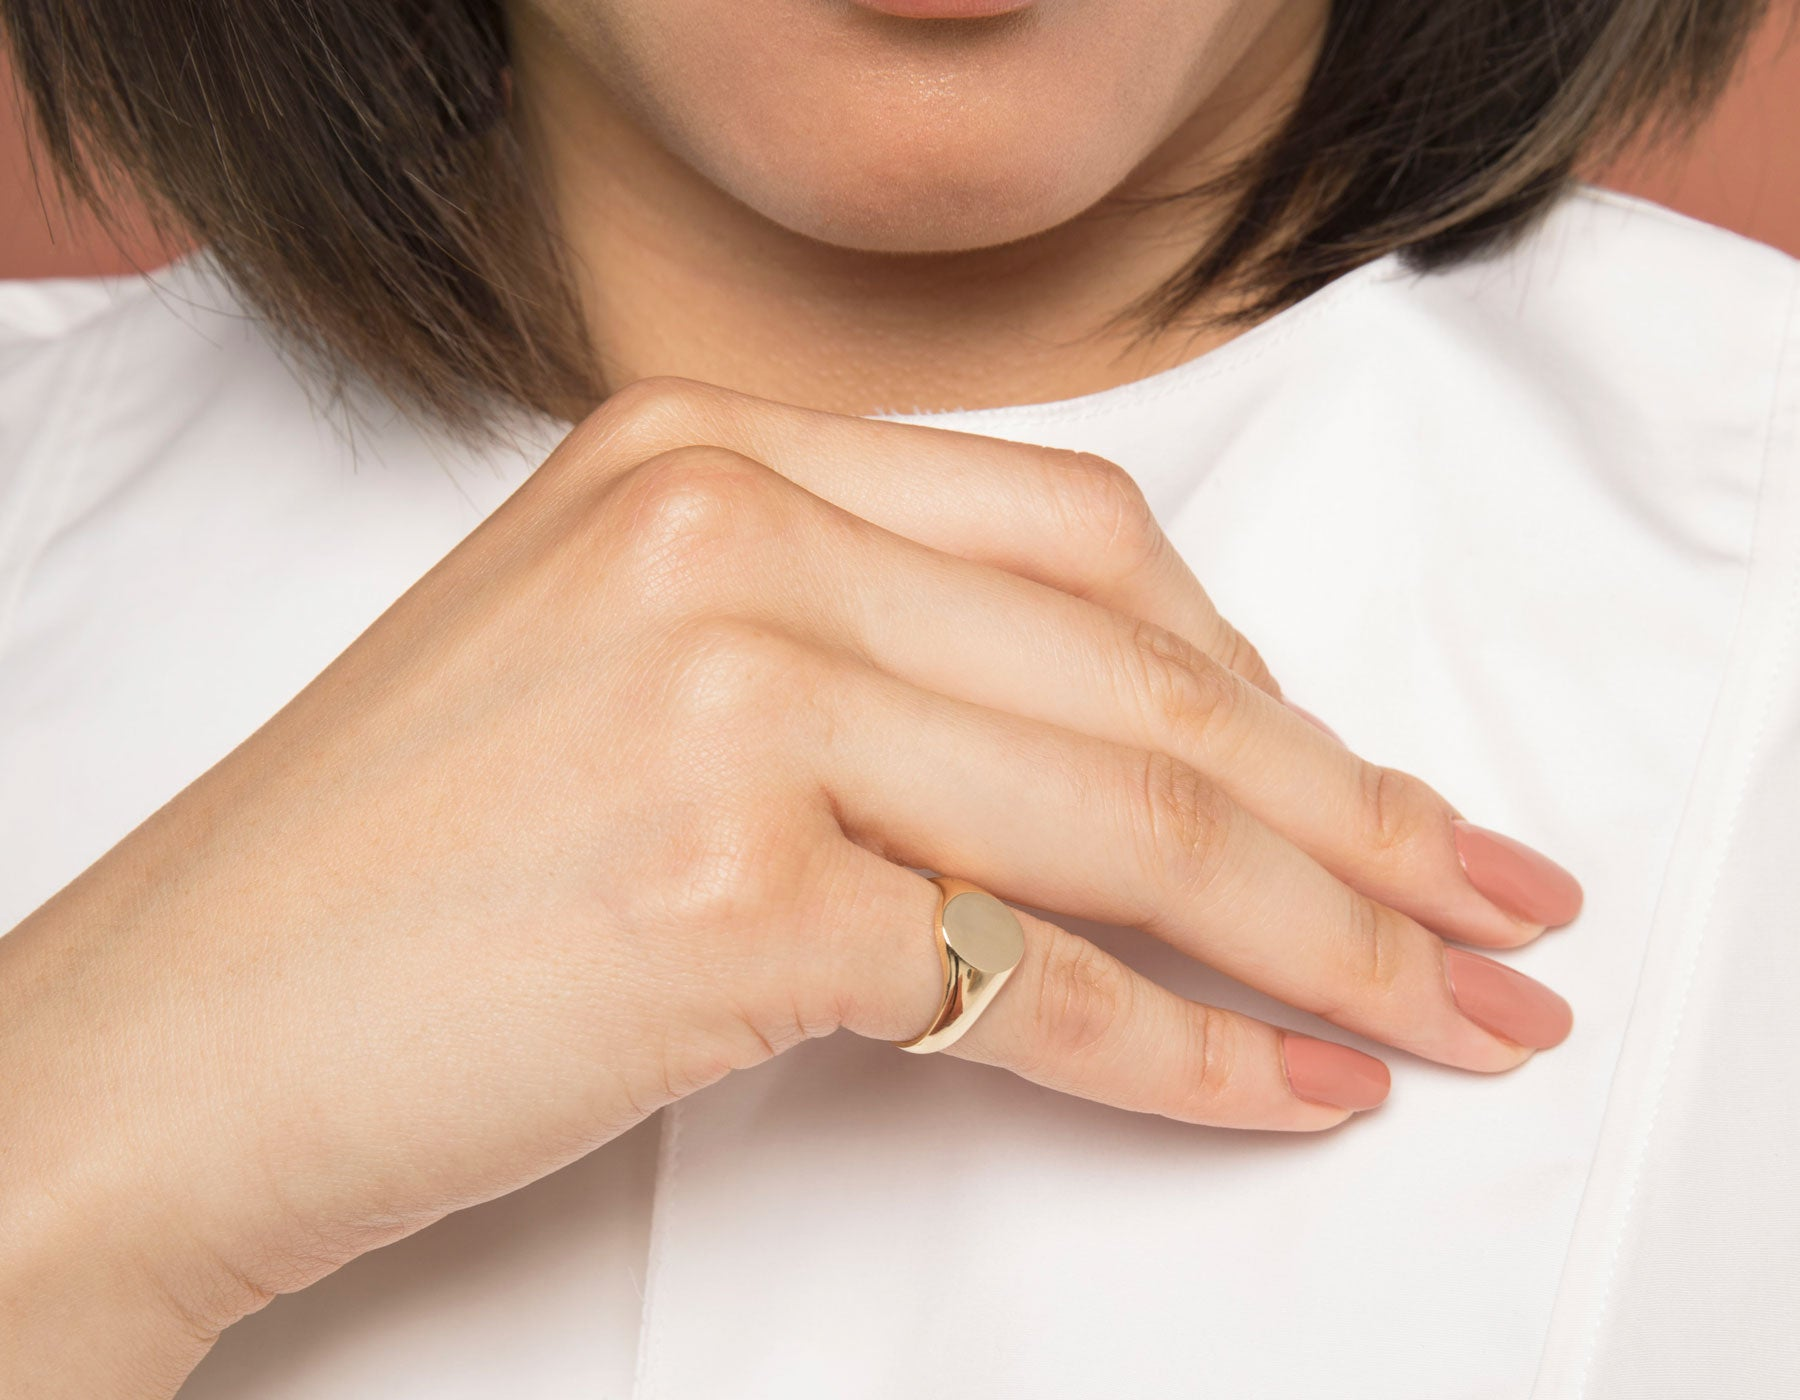 Model wearing Vrai 14k yellow gold signet ring with engraved initial